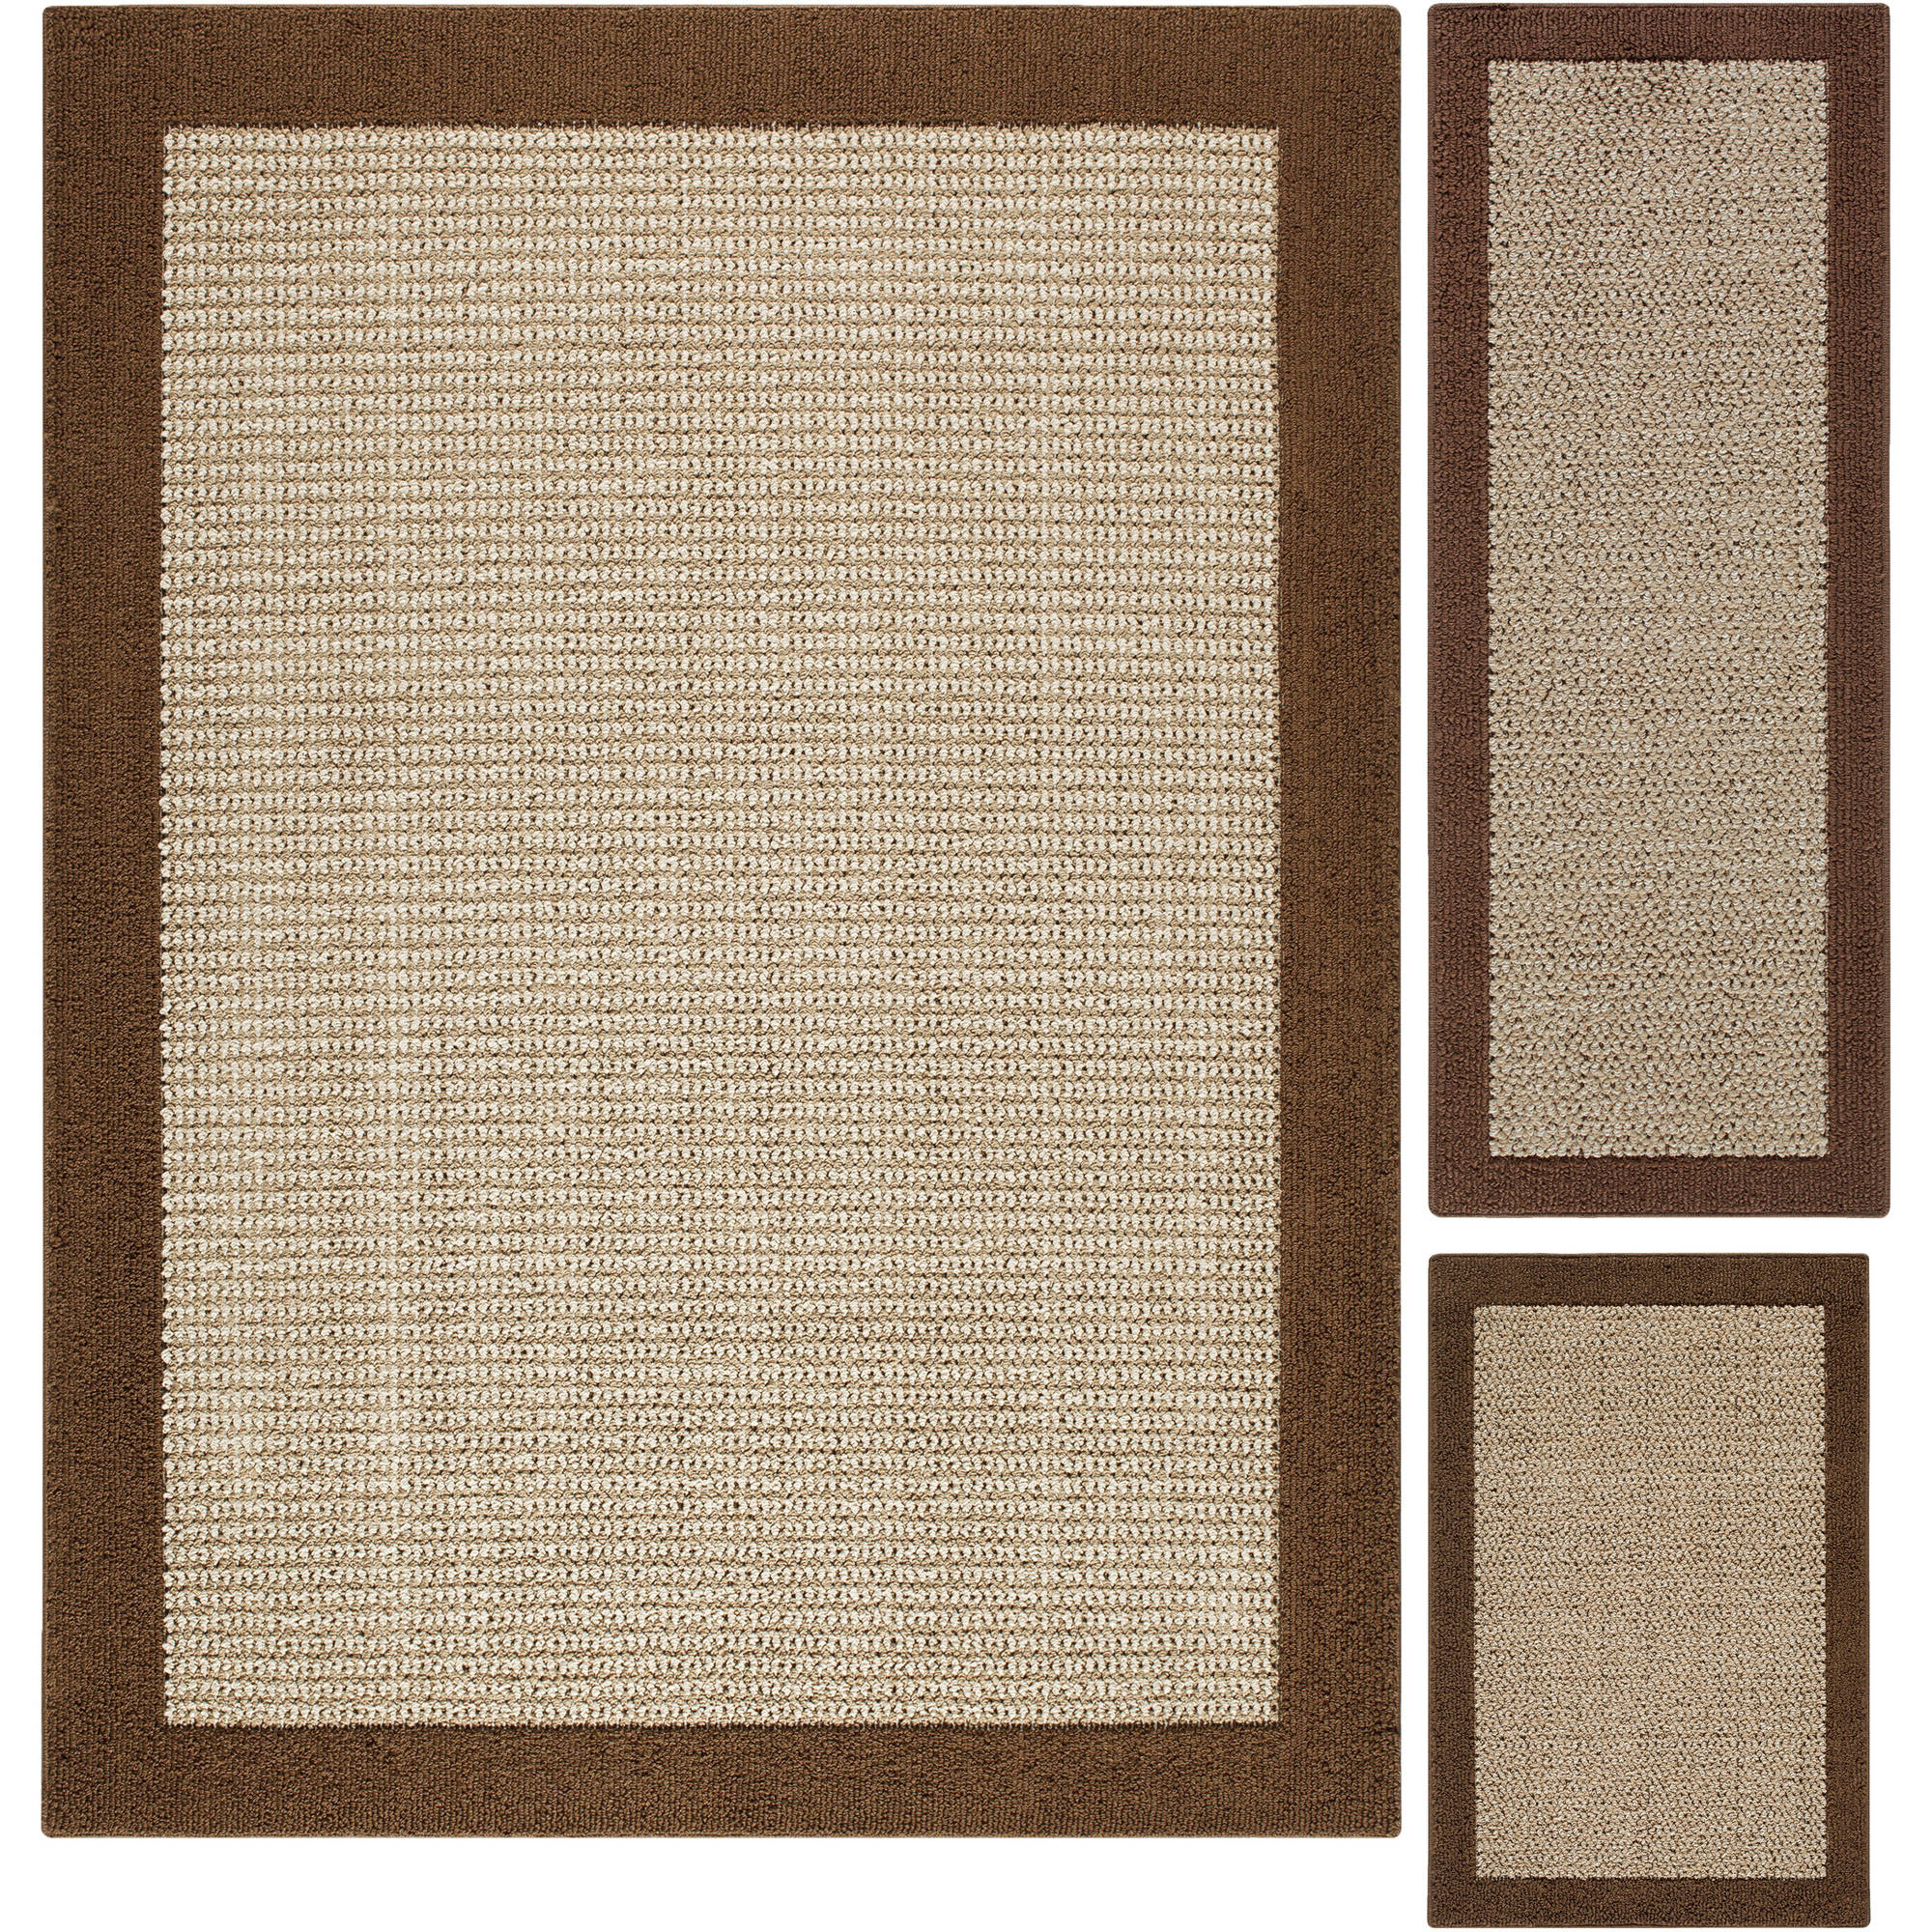 Mainstays Faux Sisal 3-Piece Area Rug Set